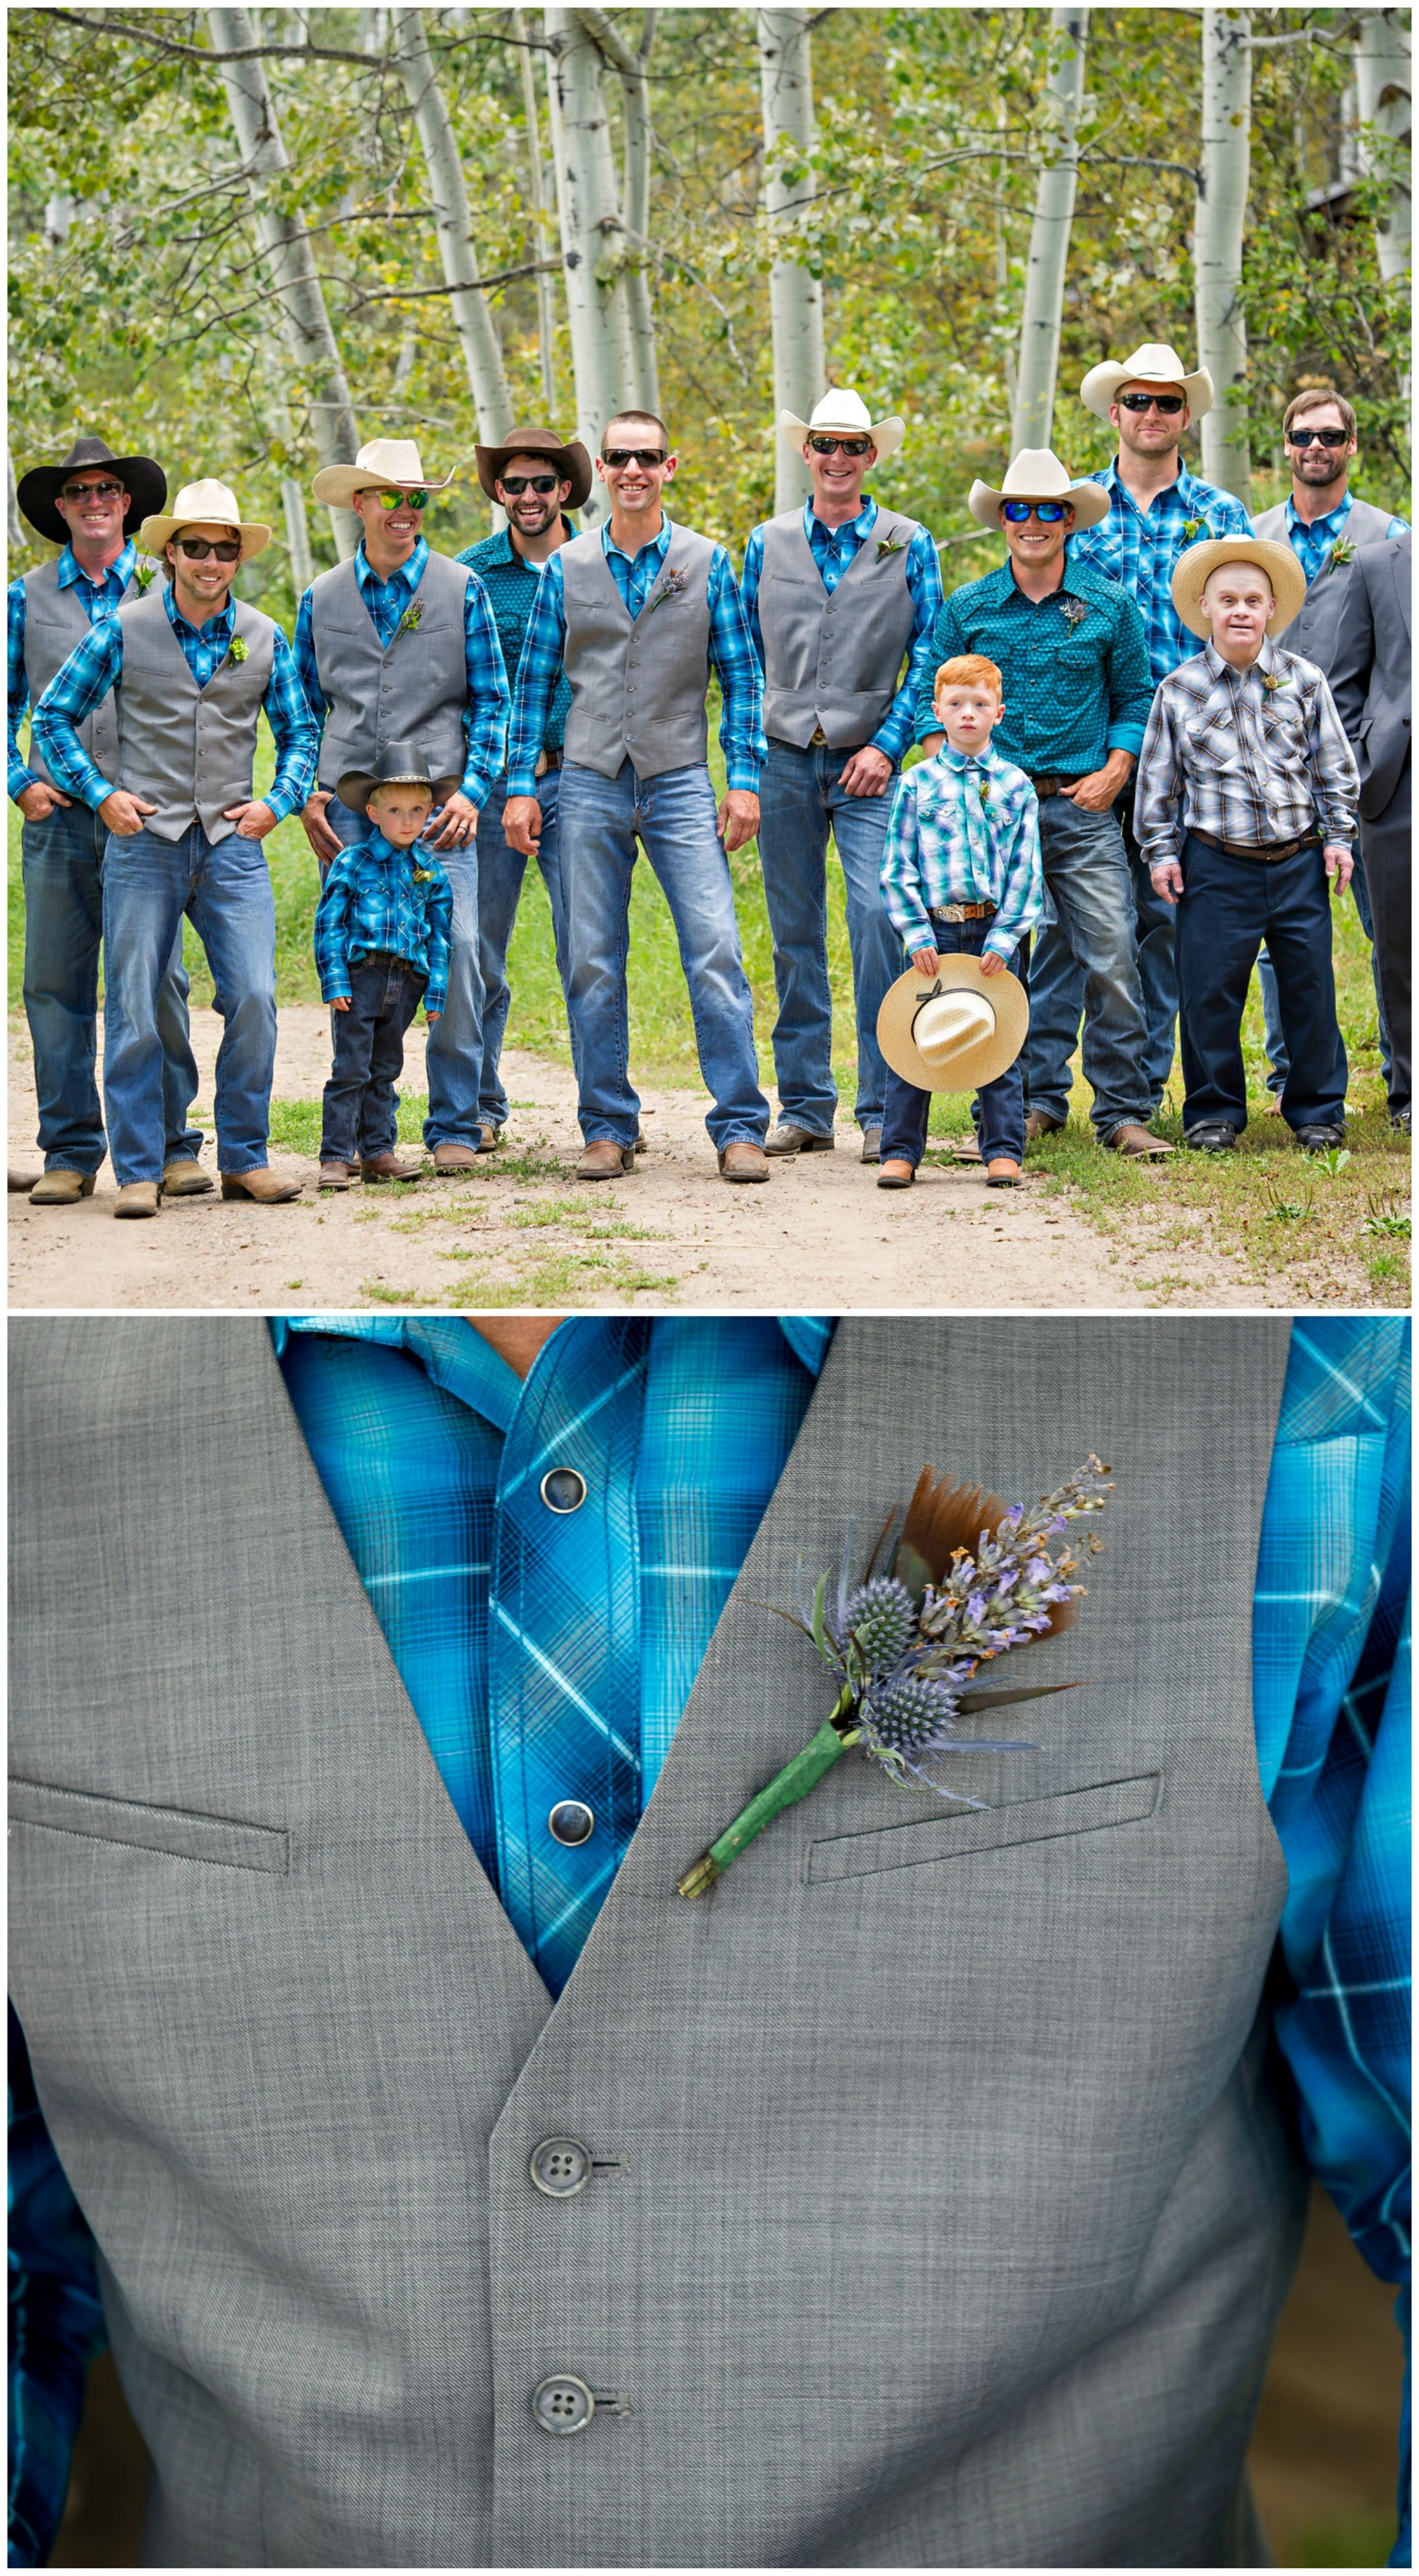 The Smarter Way to Wed | Pinterest | Groomsmen outfits, Blue plaid ...